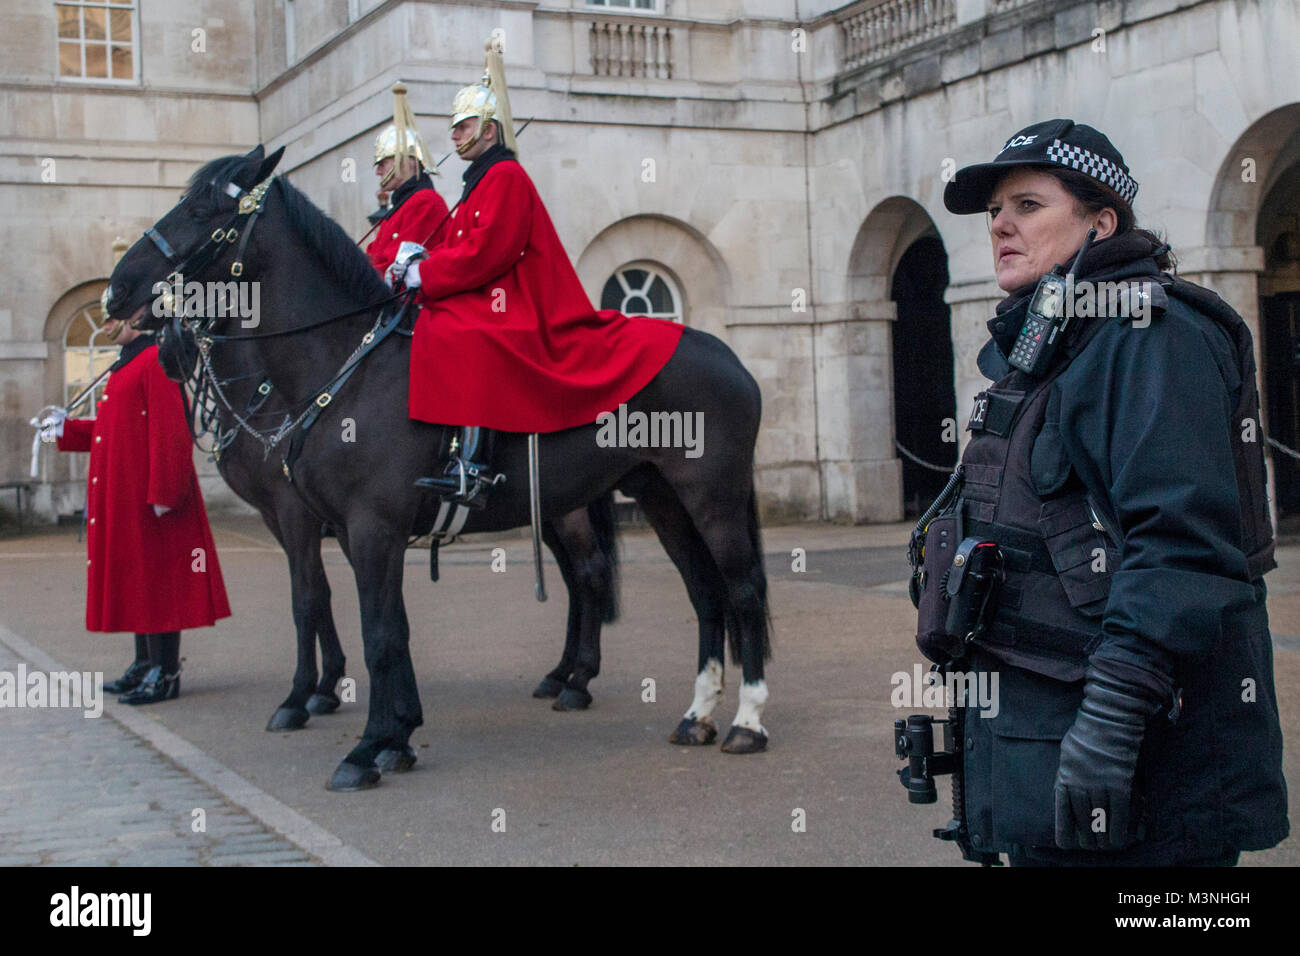 An armed policewoman on patrol with the Horseguards on parade - Stock Image